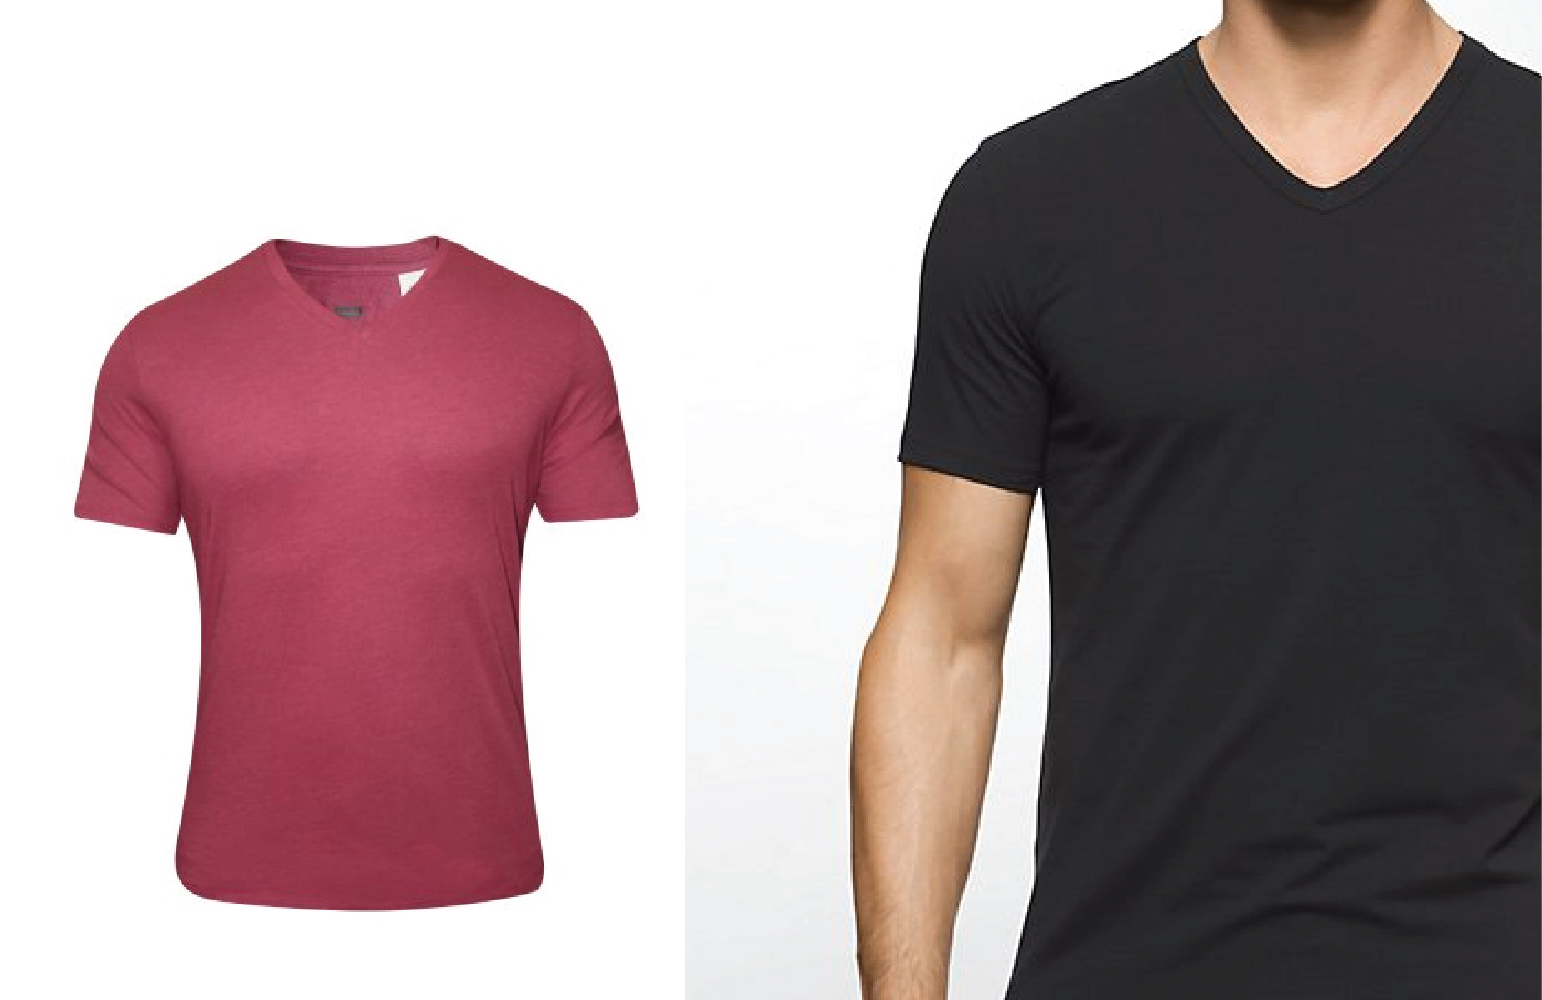 9f7f5793d7c05 T Shirts Printing in Dubai| Print your Brand Name, Logo with T Shirts